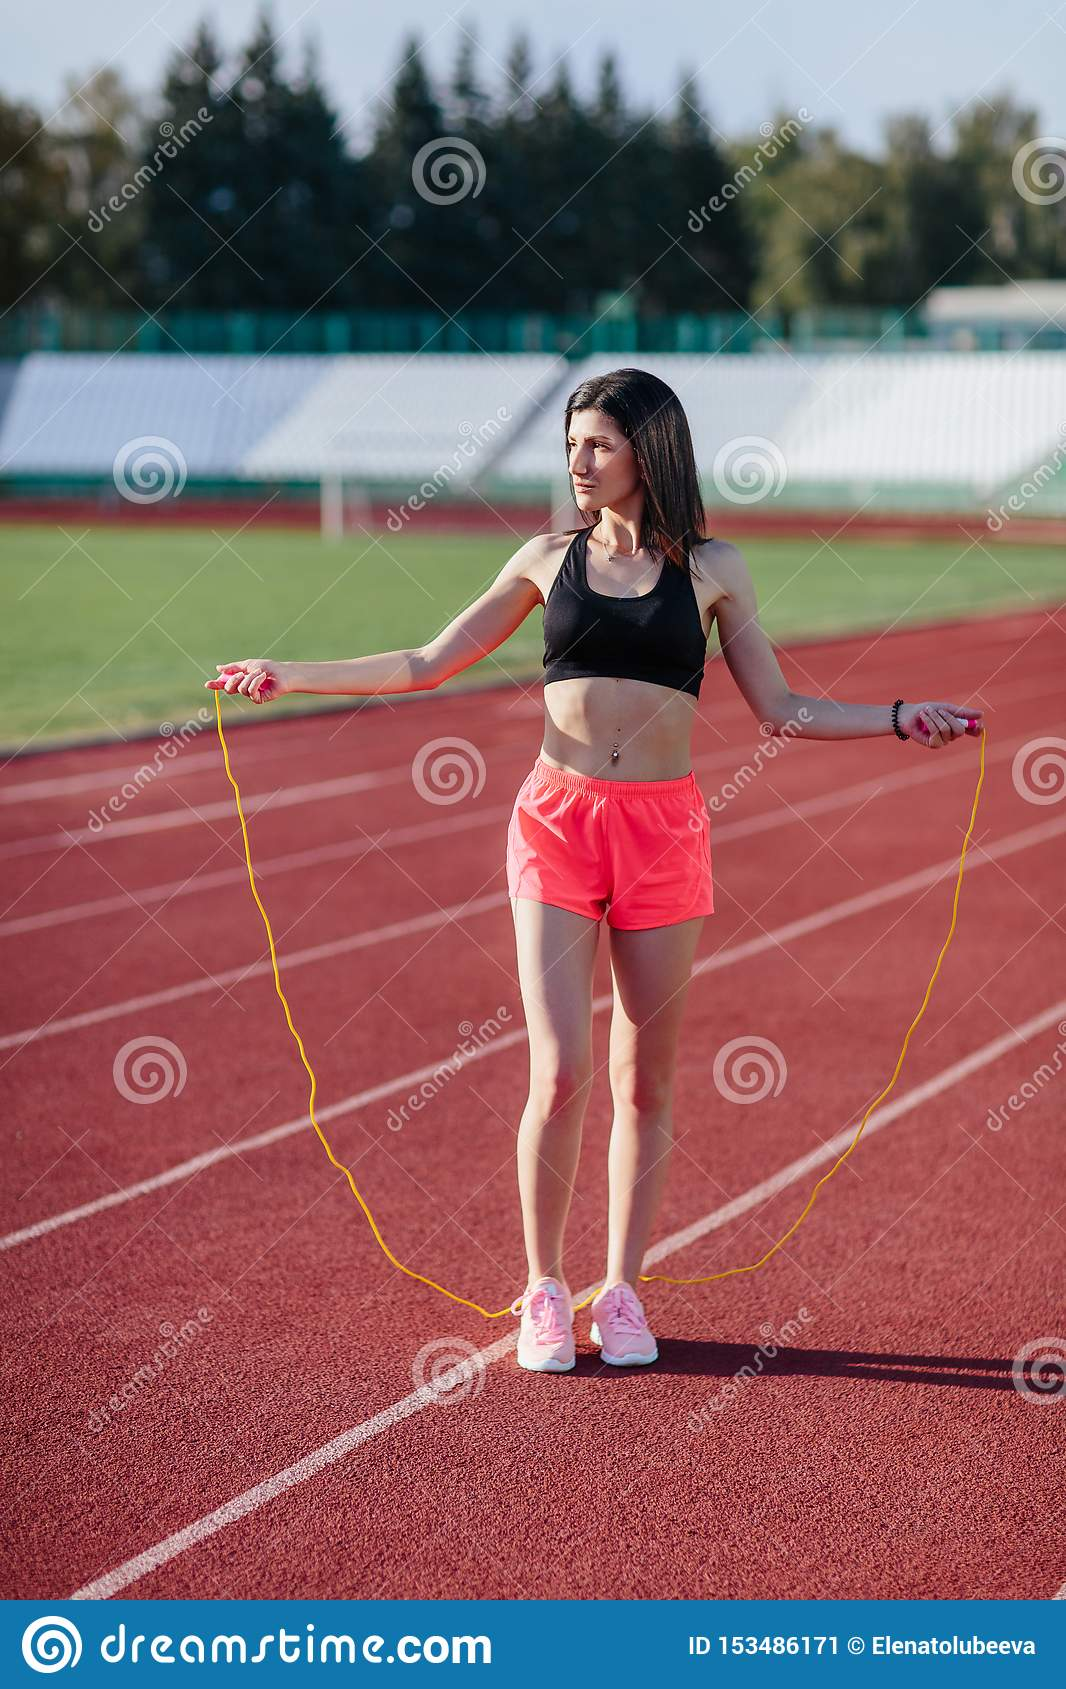 Young brunette woman athlete in pink shorts and black top on stadium sporty lifestyle standing on track holding jump rope under